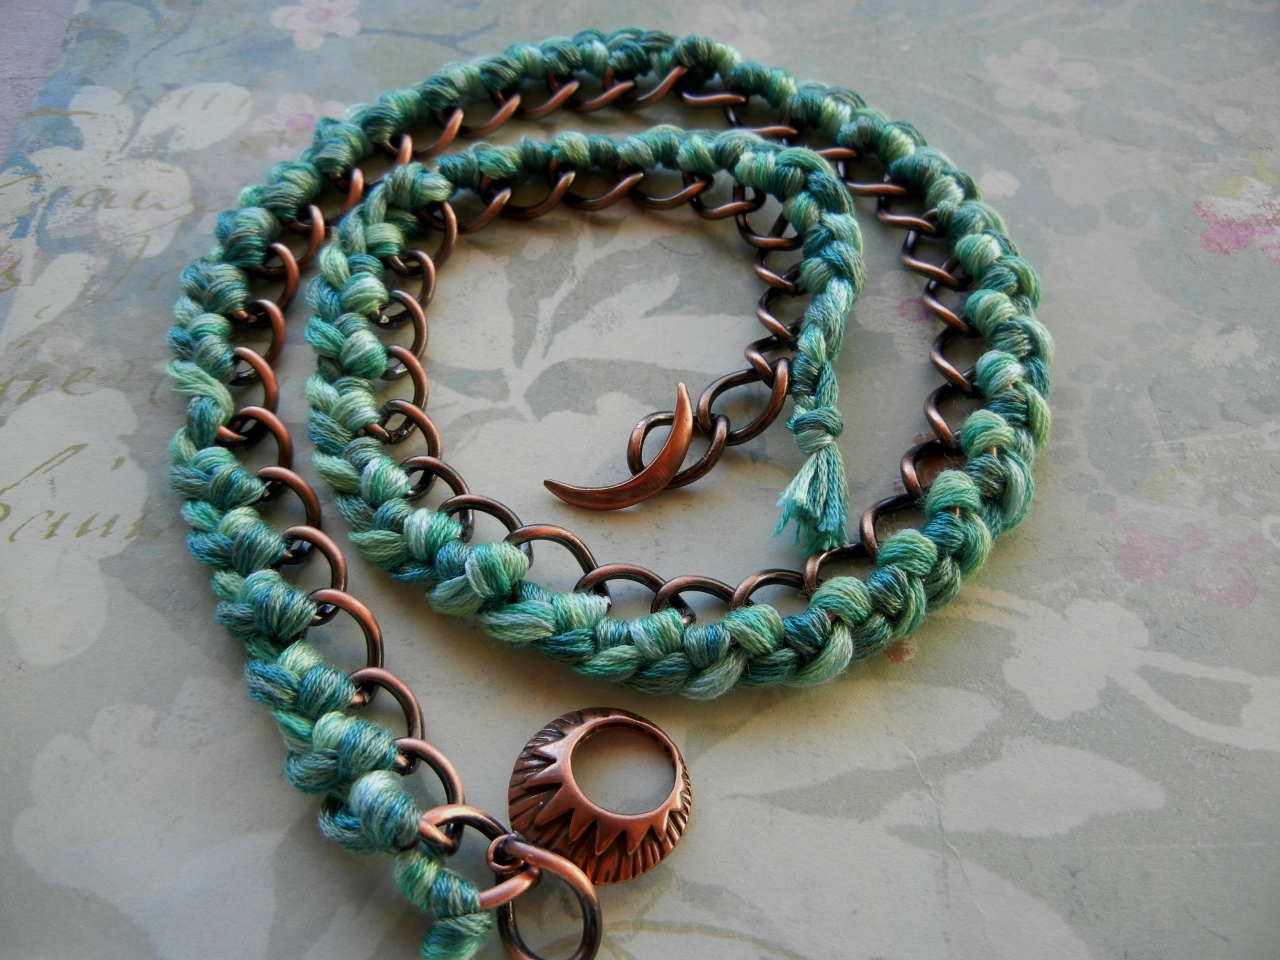 floss bracelet turquoise embroidery diy and chain things antique curb rings triple copper wrapped braided